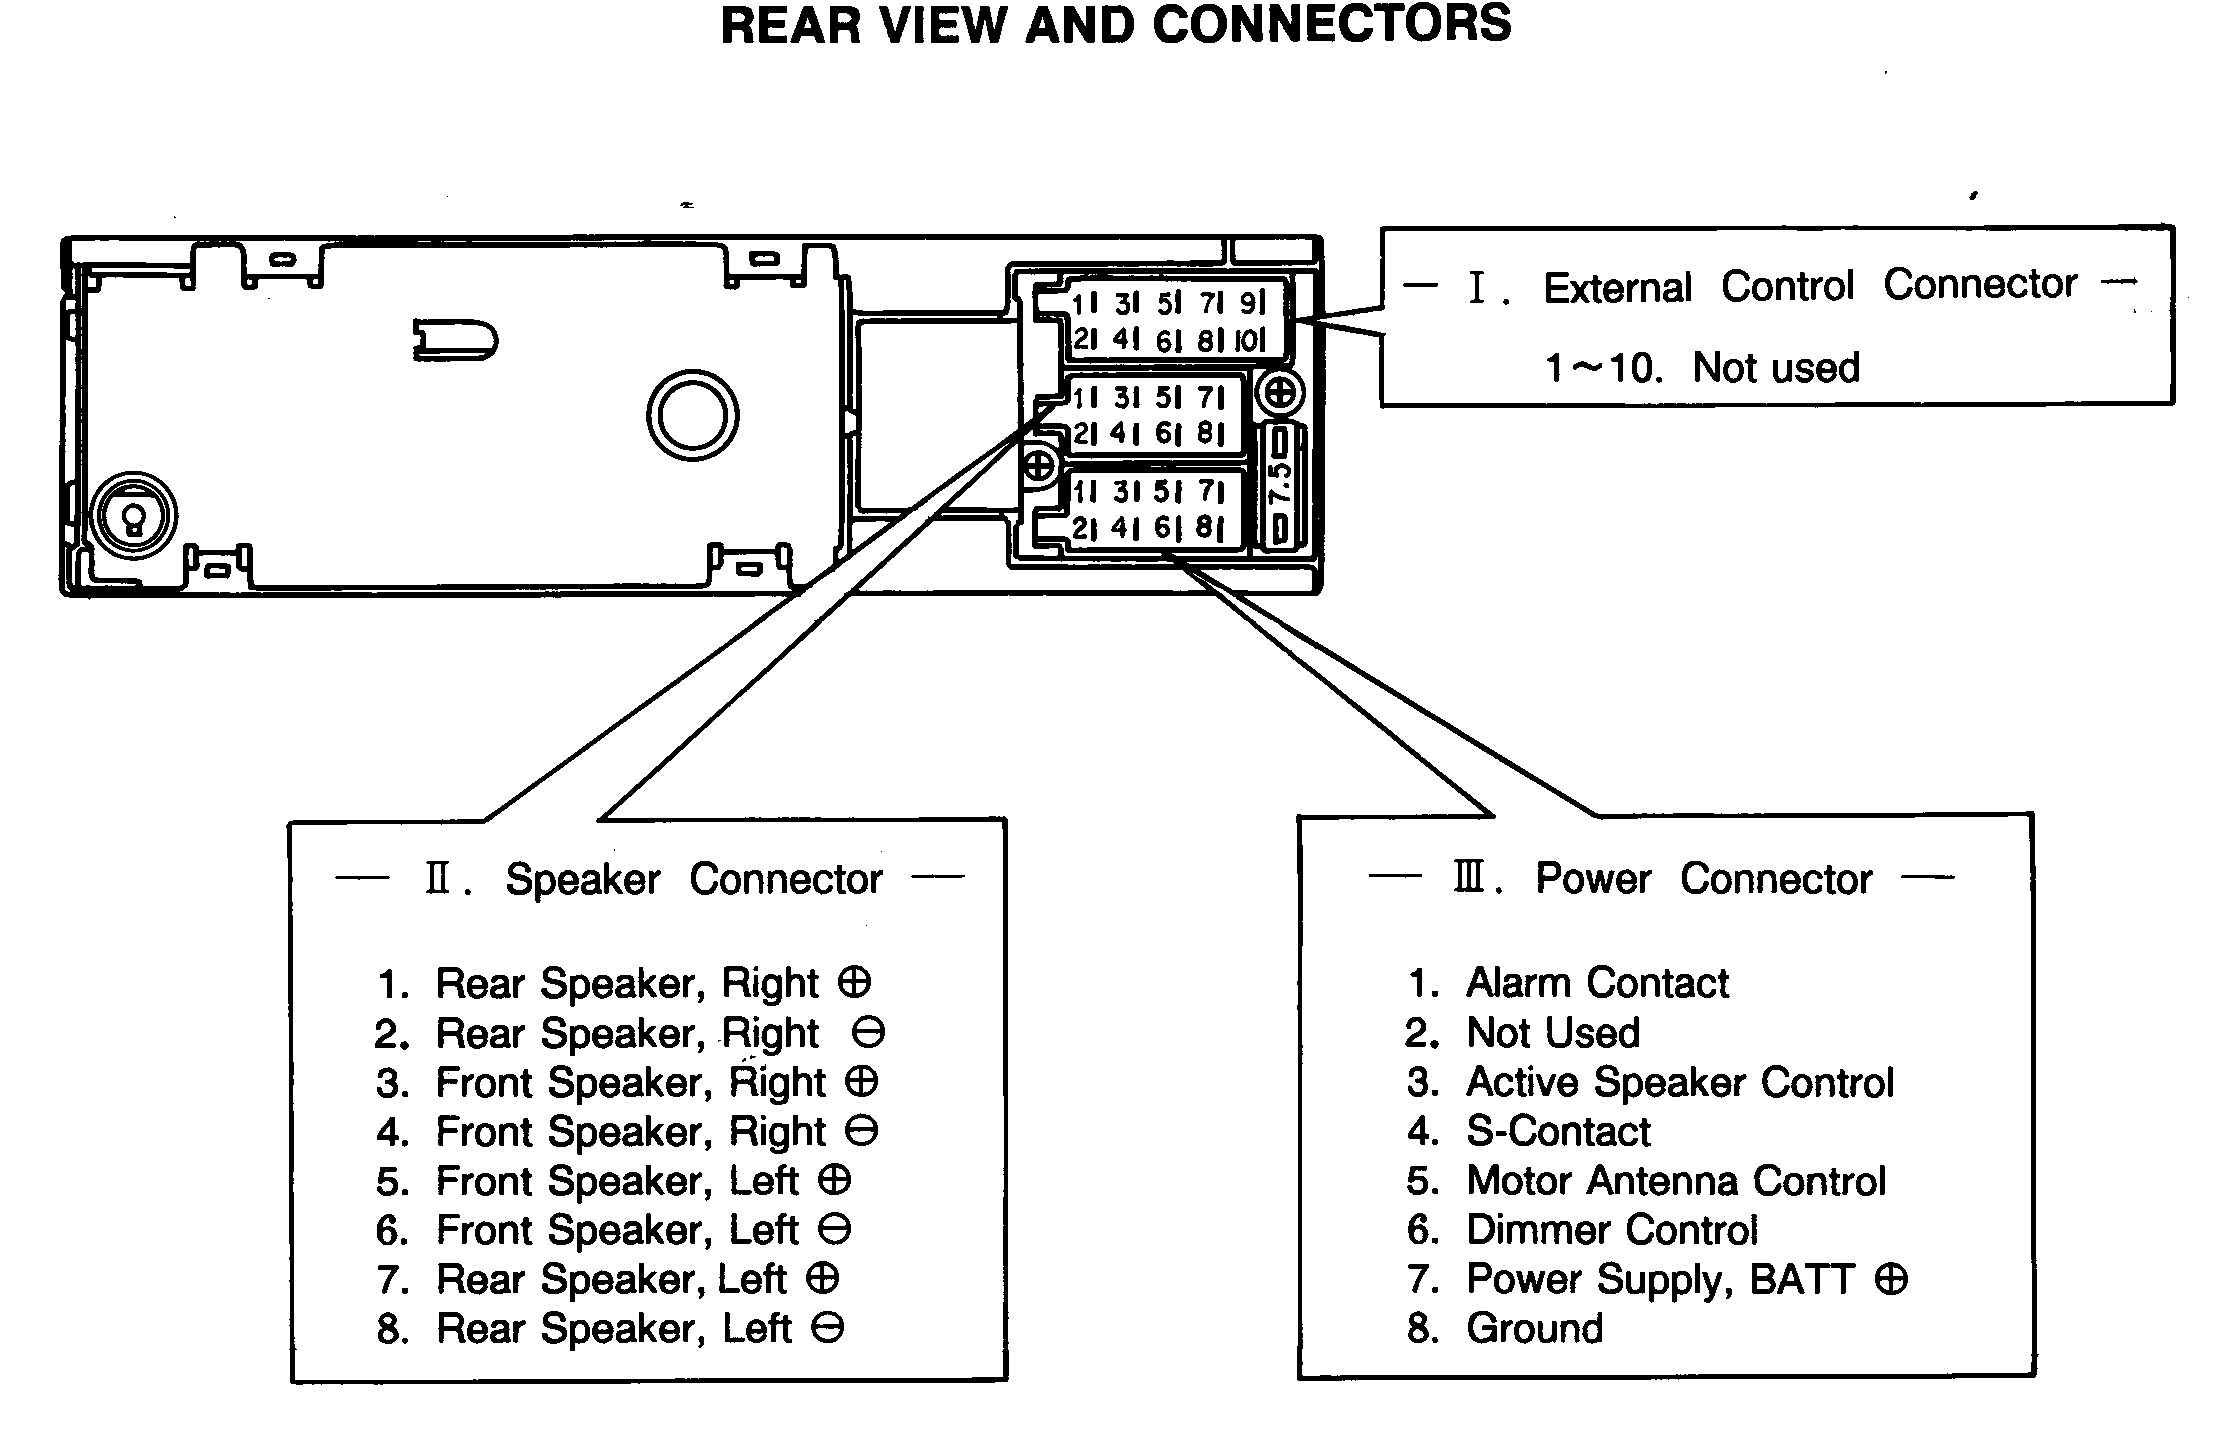 Ford Taurus Factory Stereo Wiring Diagram Radio Car With Detaleted And Diagrams Of